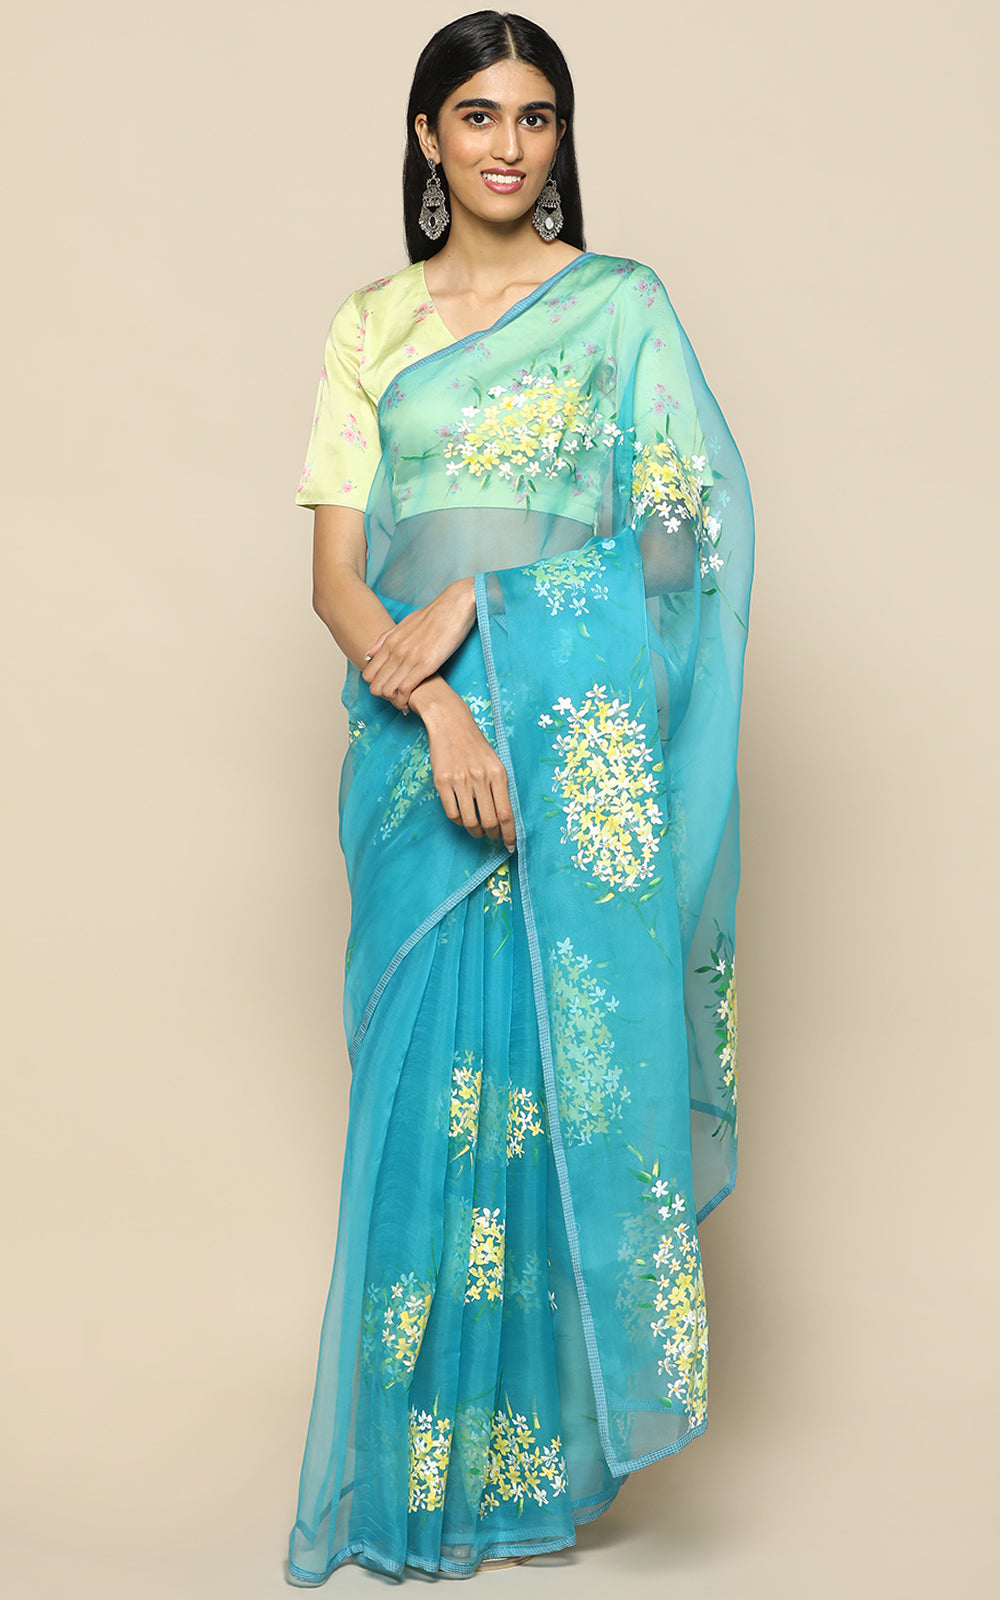 TURQUOISE BLUE ORGANZA SILK SAREE WITH HAND PAINTED FLOWERS